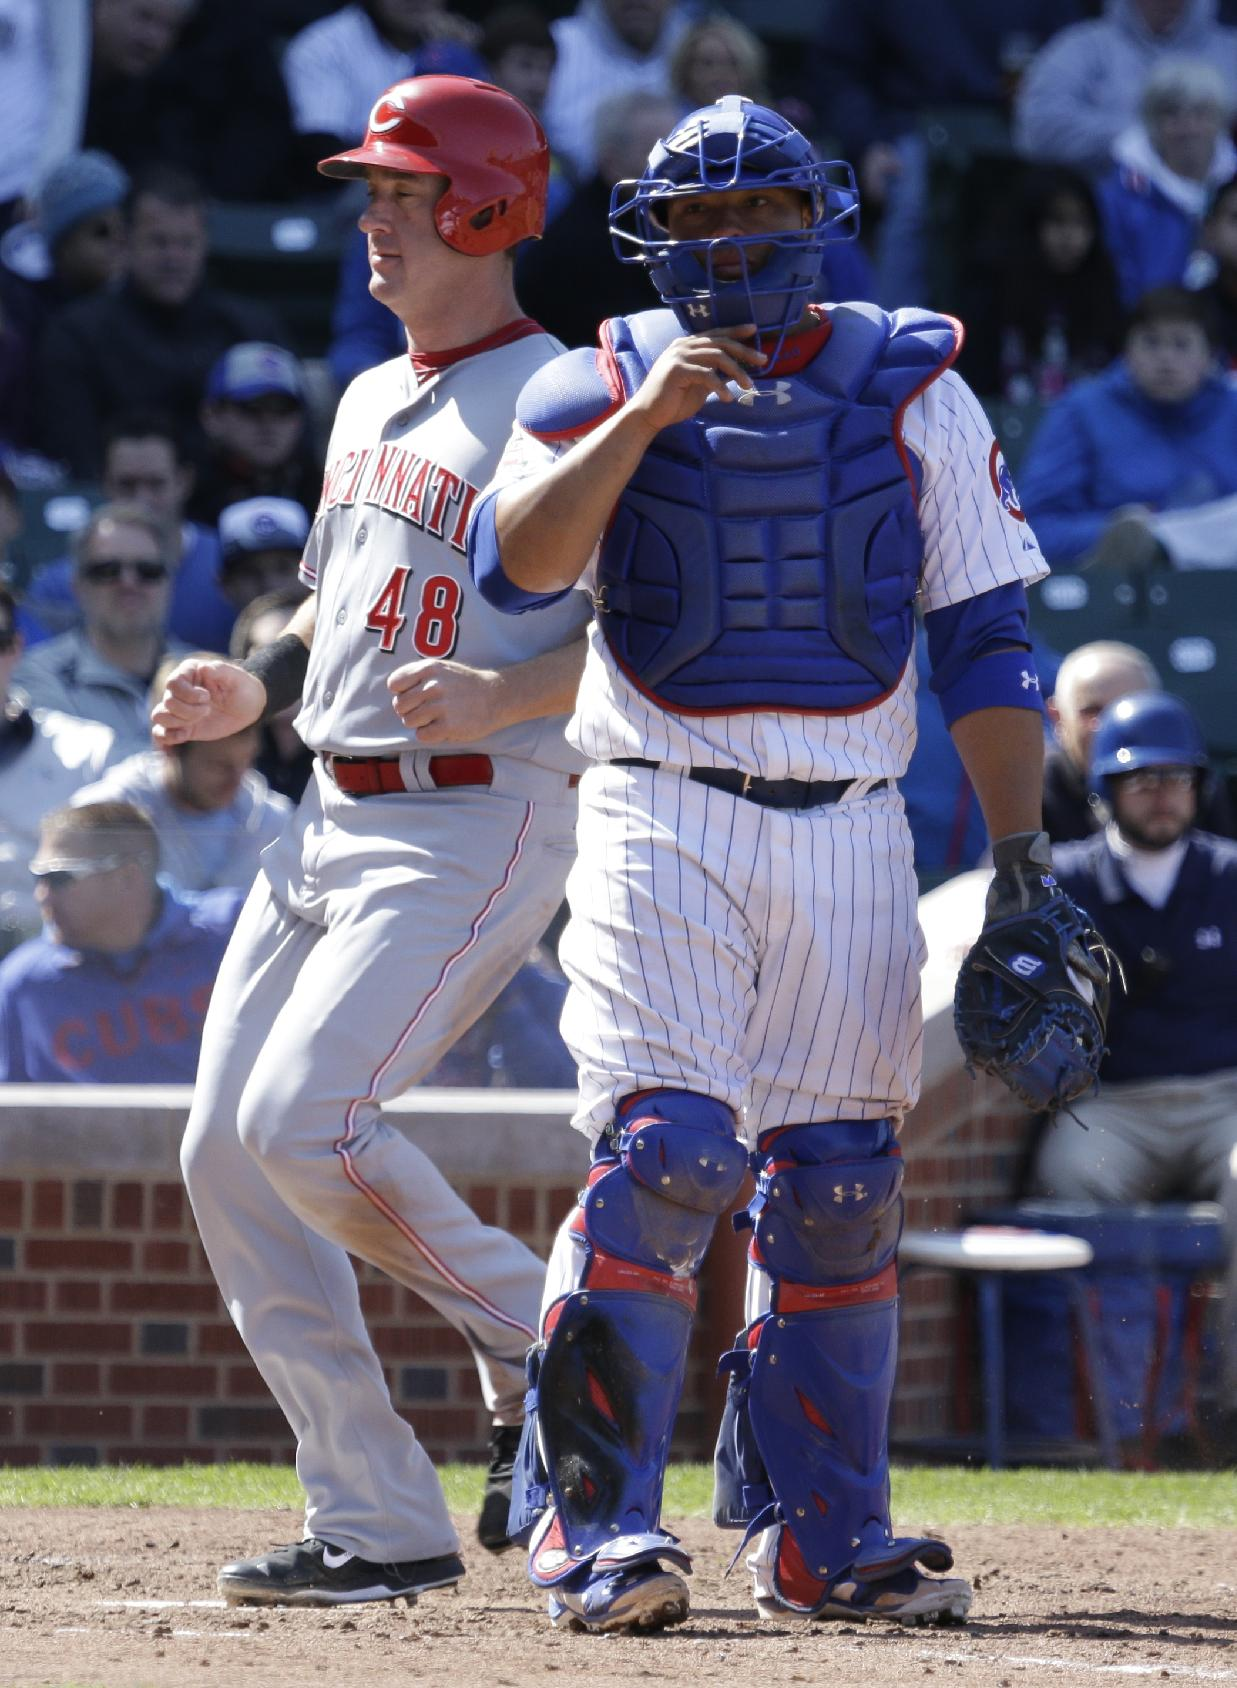 Alfredo Simon leads Reds over reeling Cubs 4-1